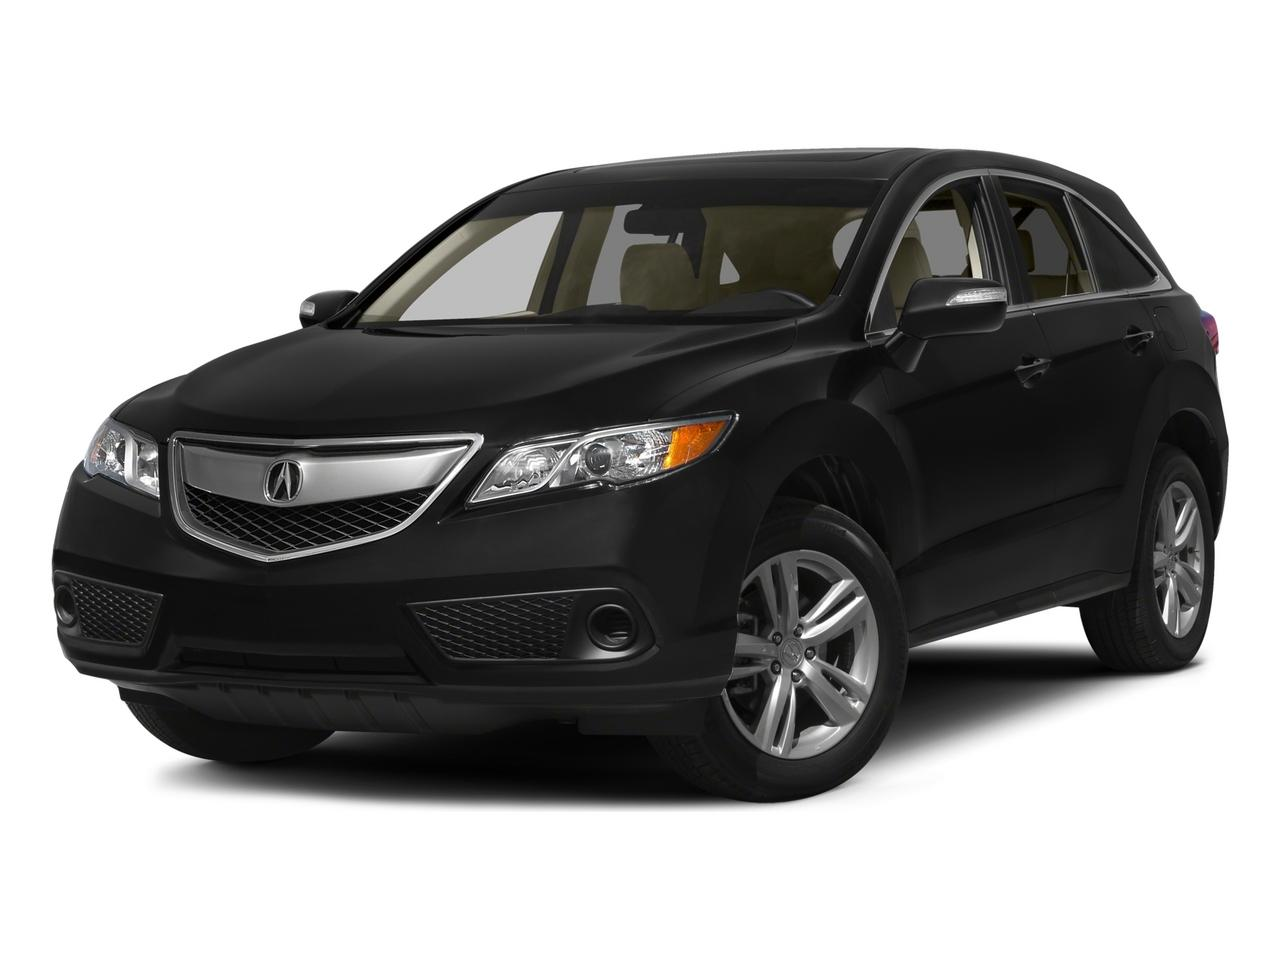 2015 Acura RDX Vehicle Photo in Kernersville, NC 27284